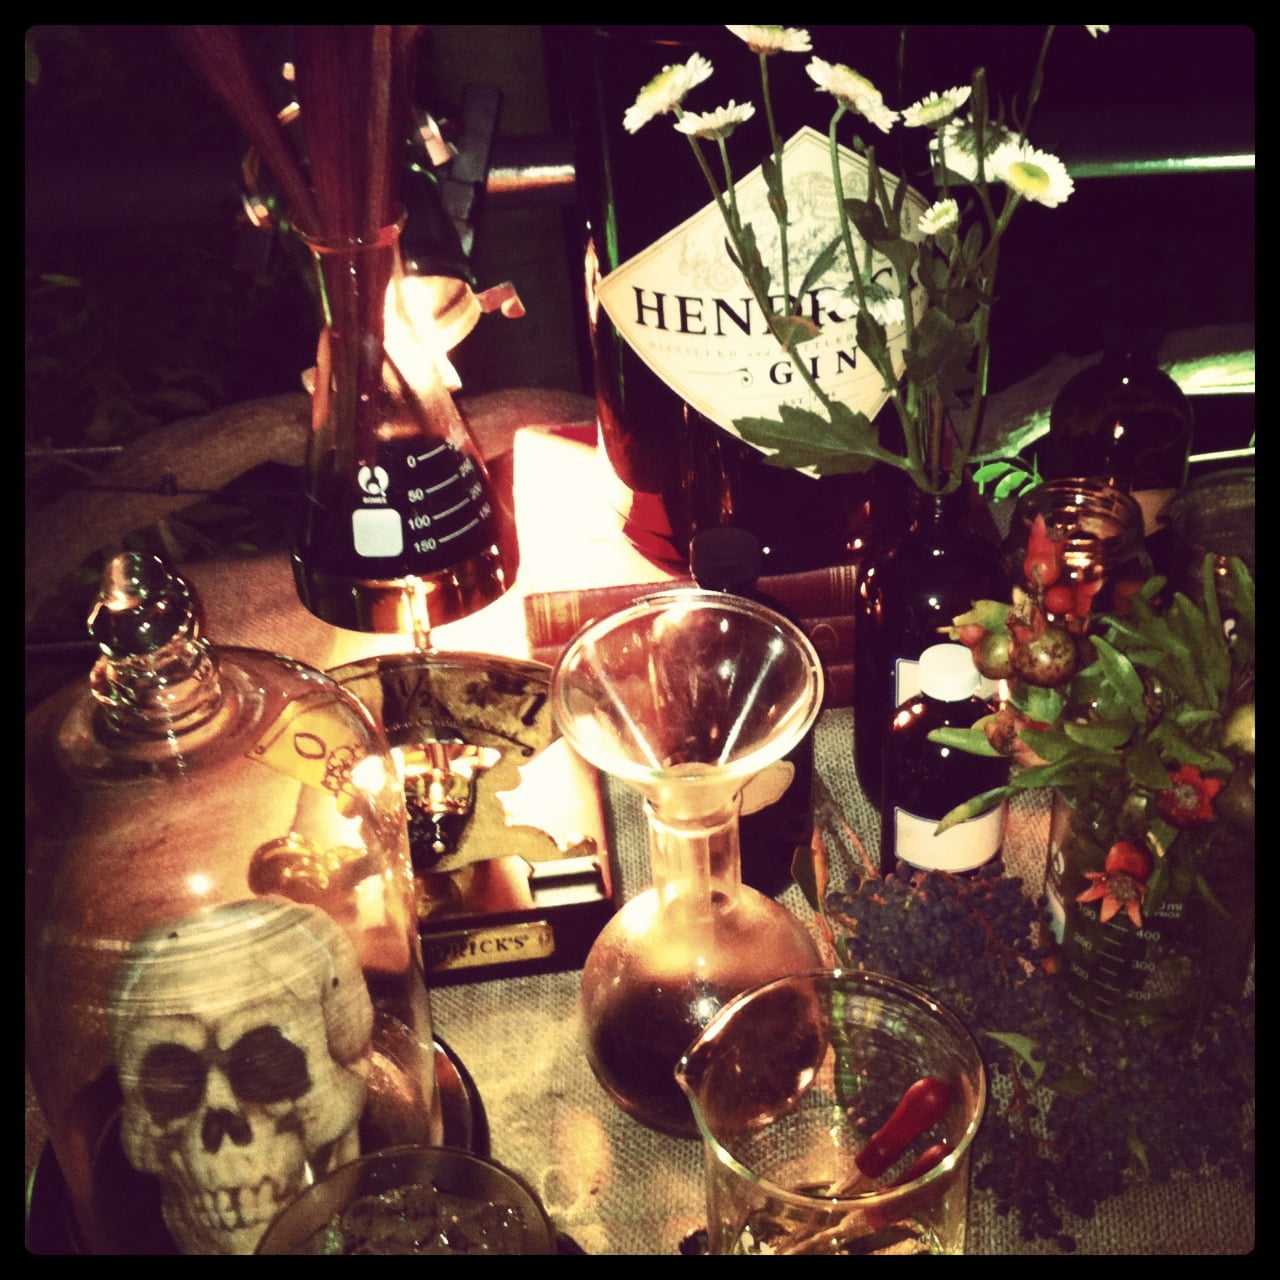 Hendrick's Night into the Botanical Unknown